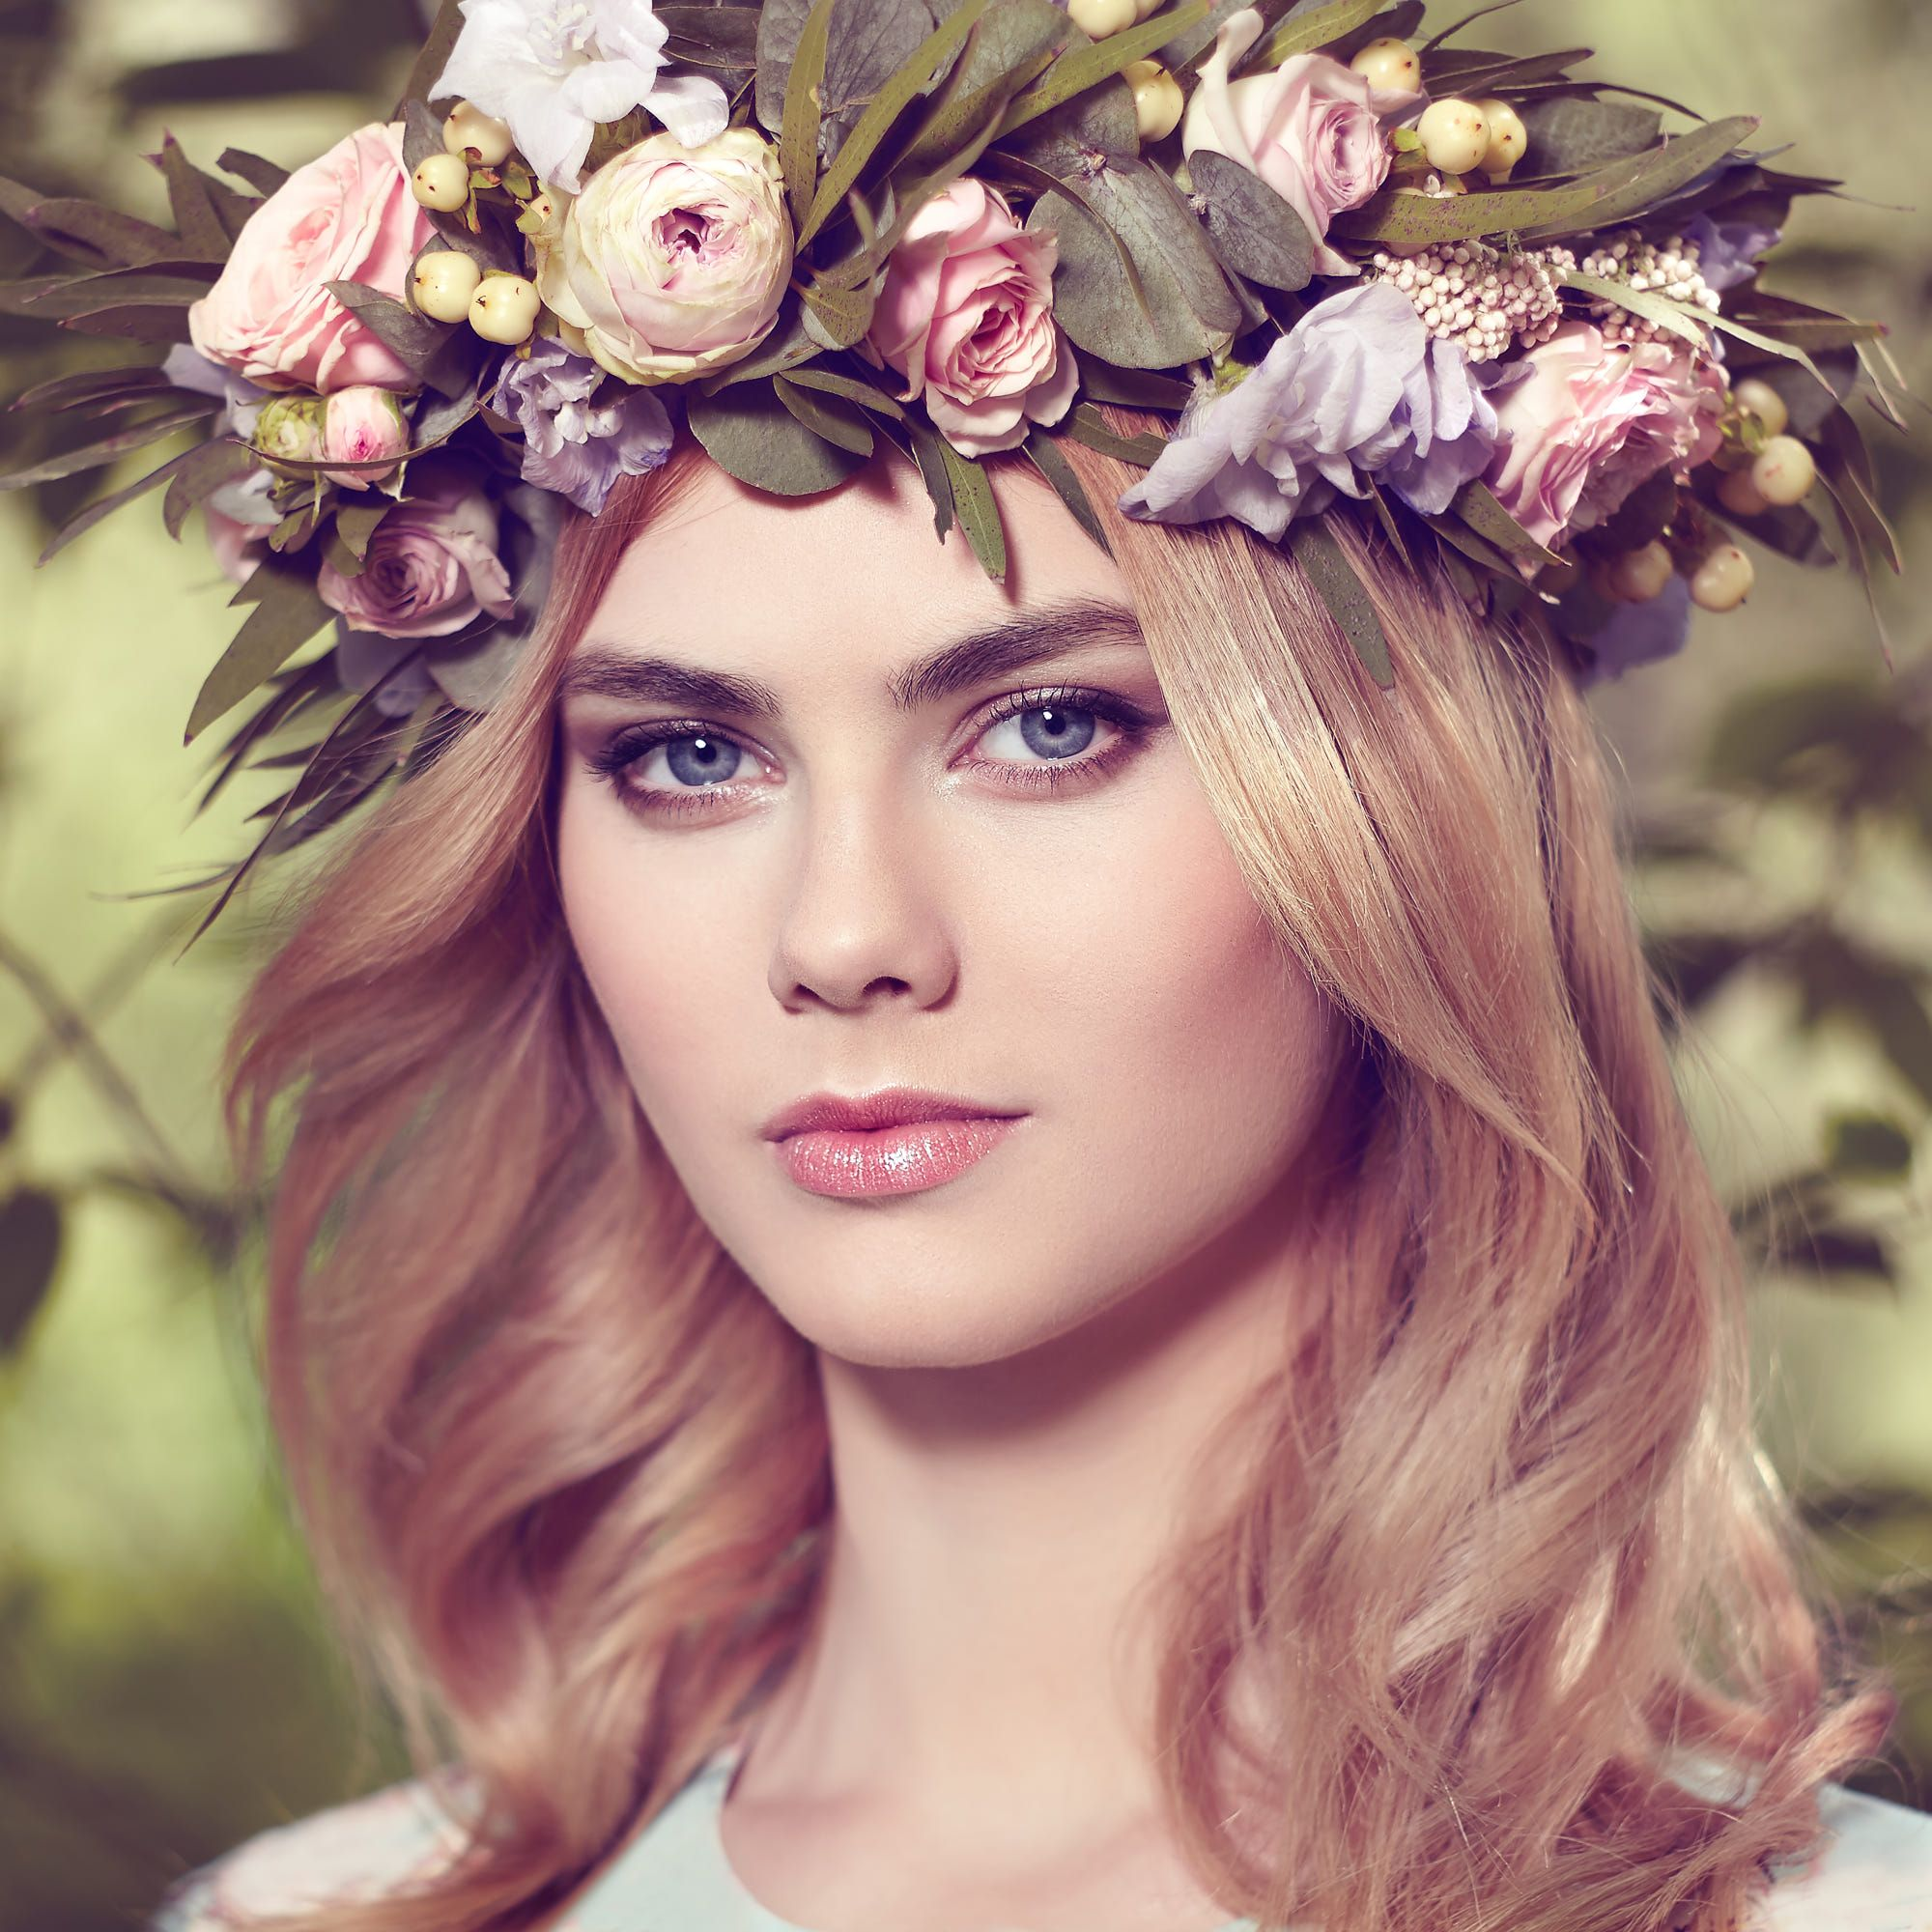 Beautiful Blonde Woman With Flower Wreath On Her Head Beauty Girl